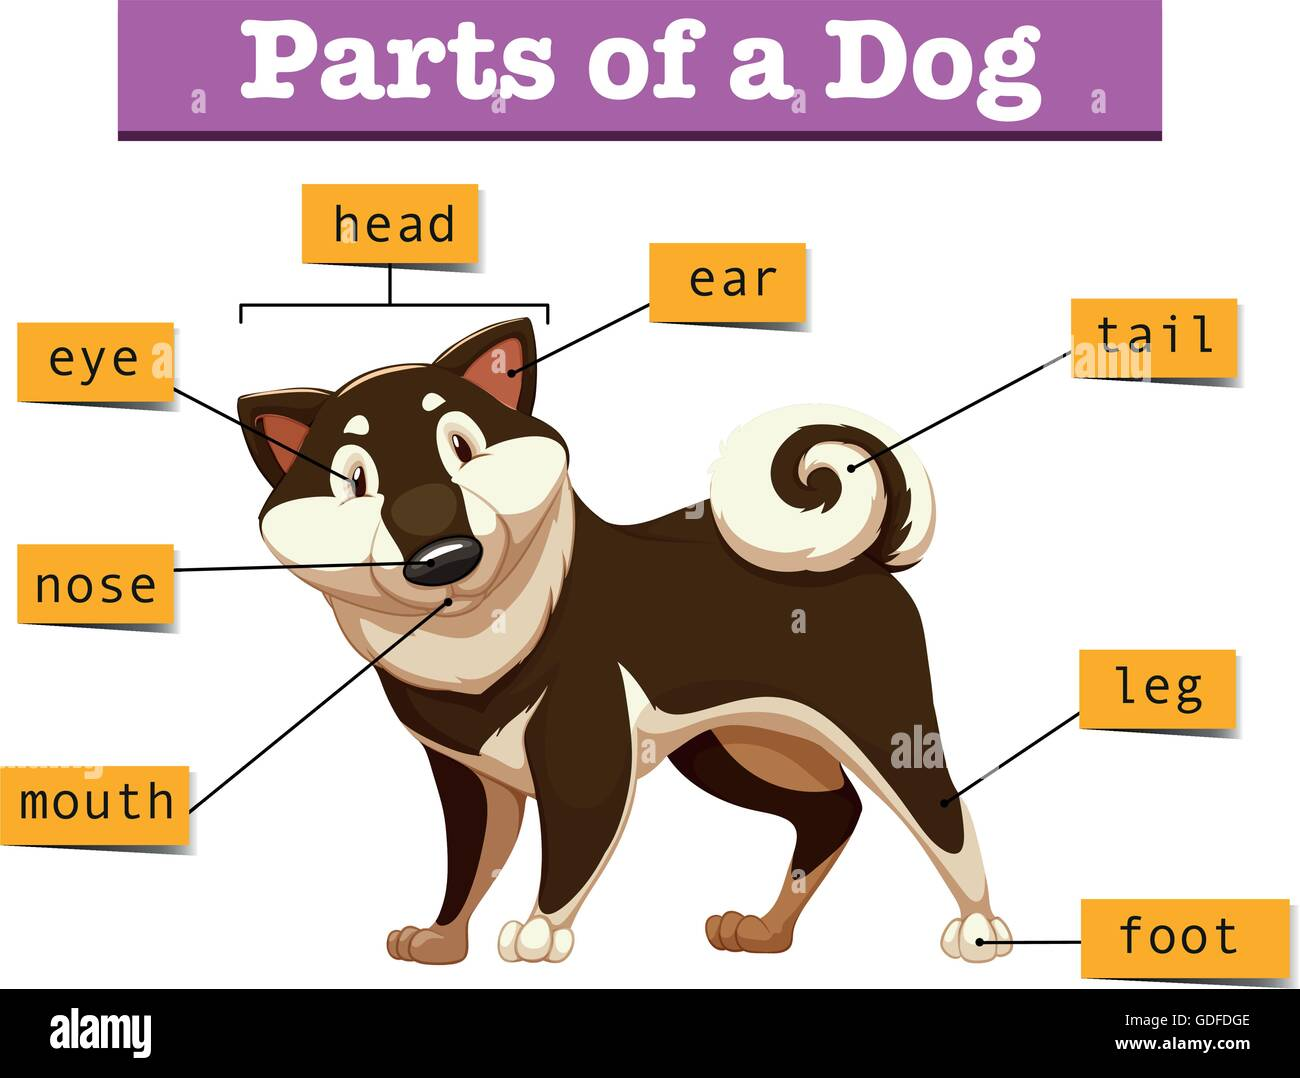 Diagram showing different part of dog illustration stock vector diagram showing different part of dog illustration ccuart Image collections